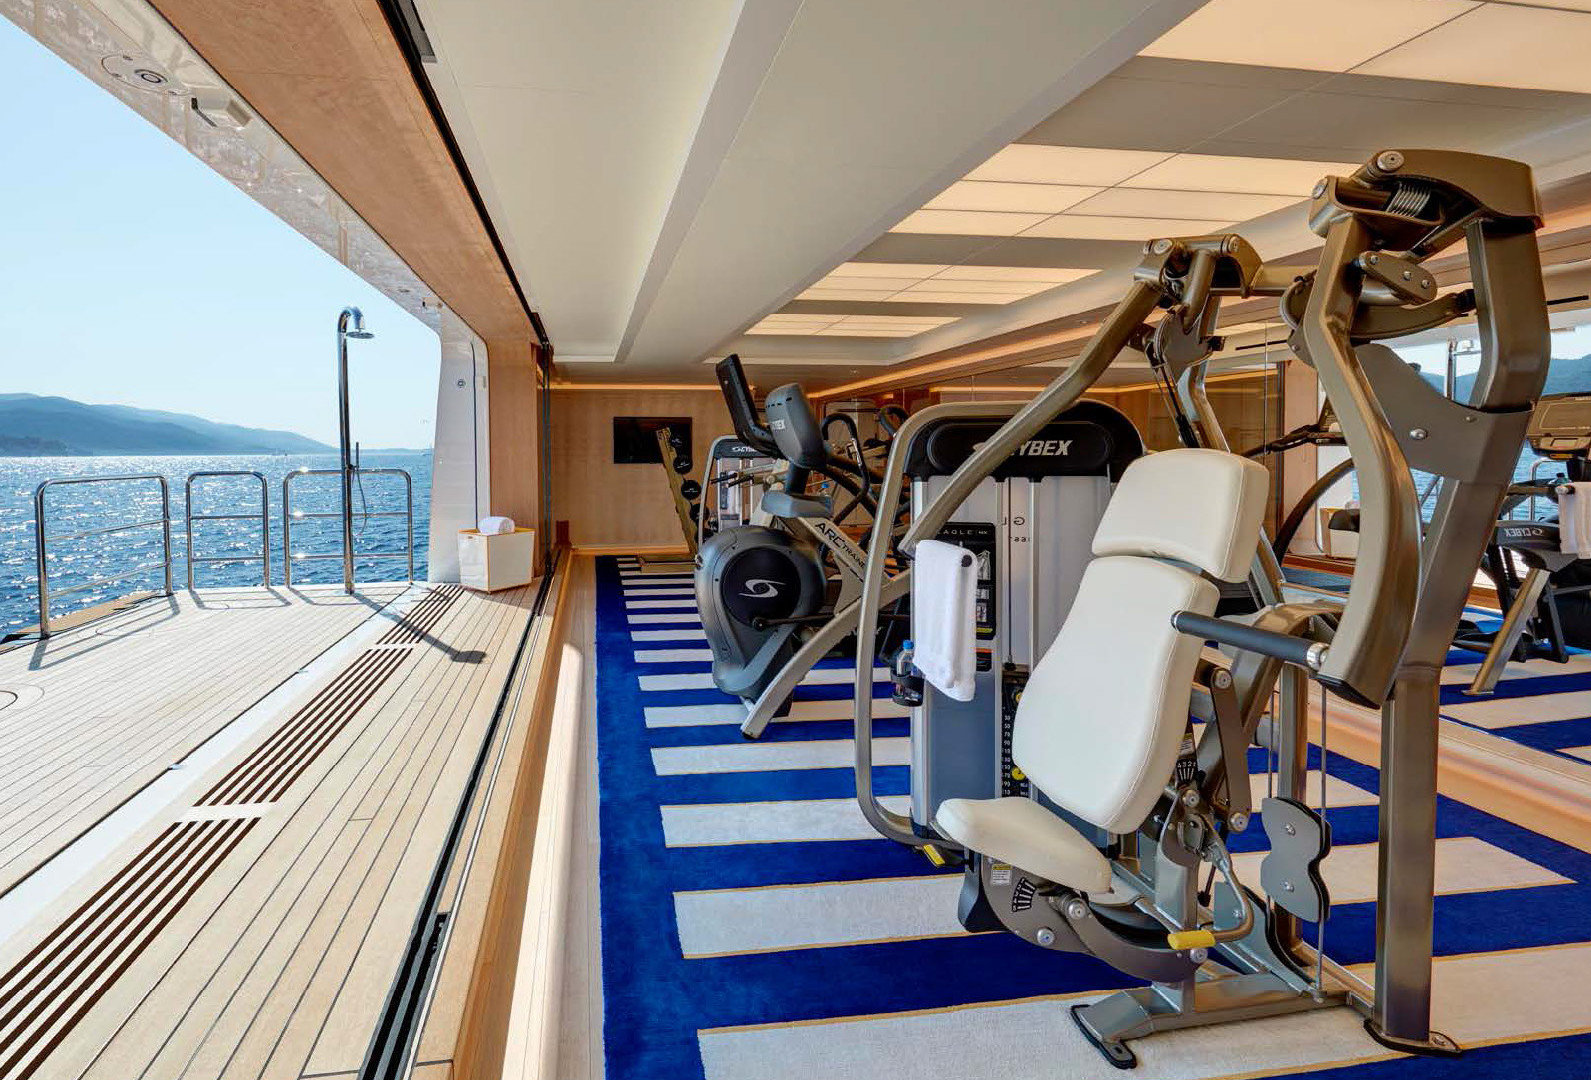 Yacht AQUARIUS - sea level gym, true open air workout with sea views!